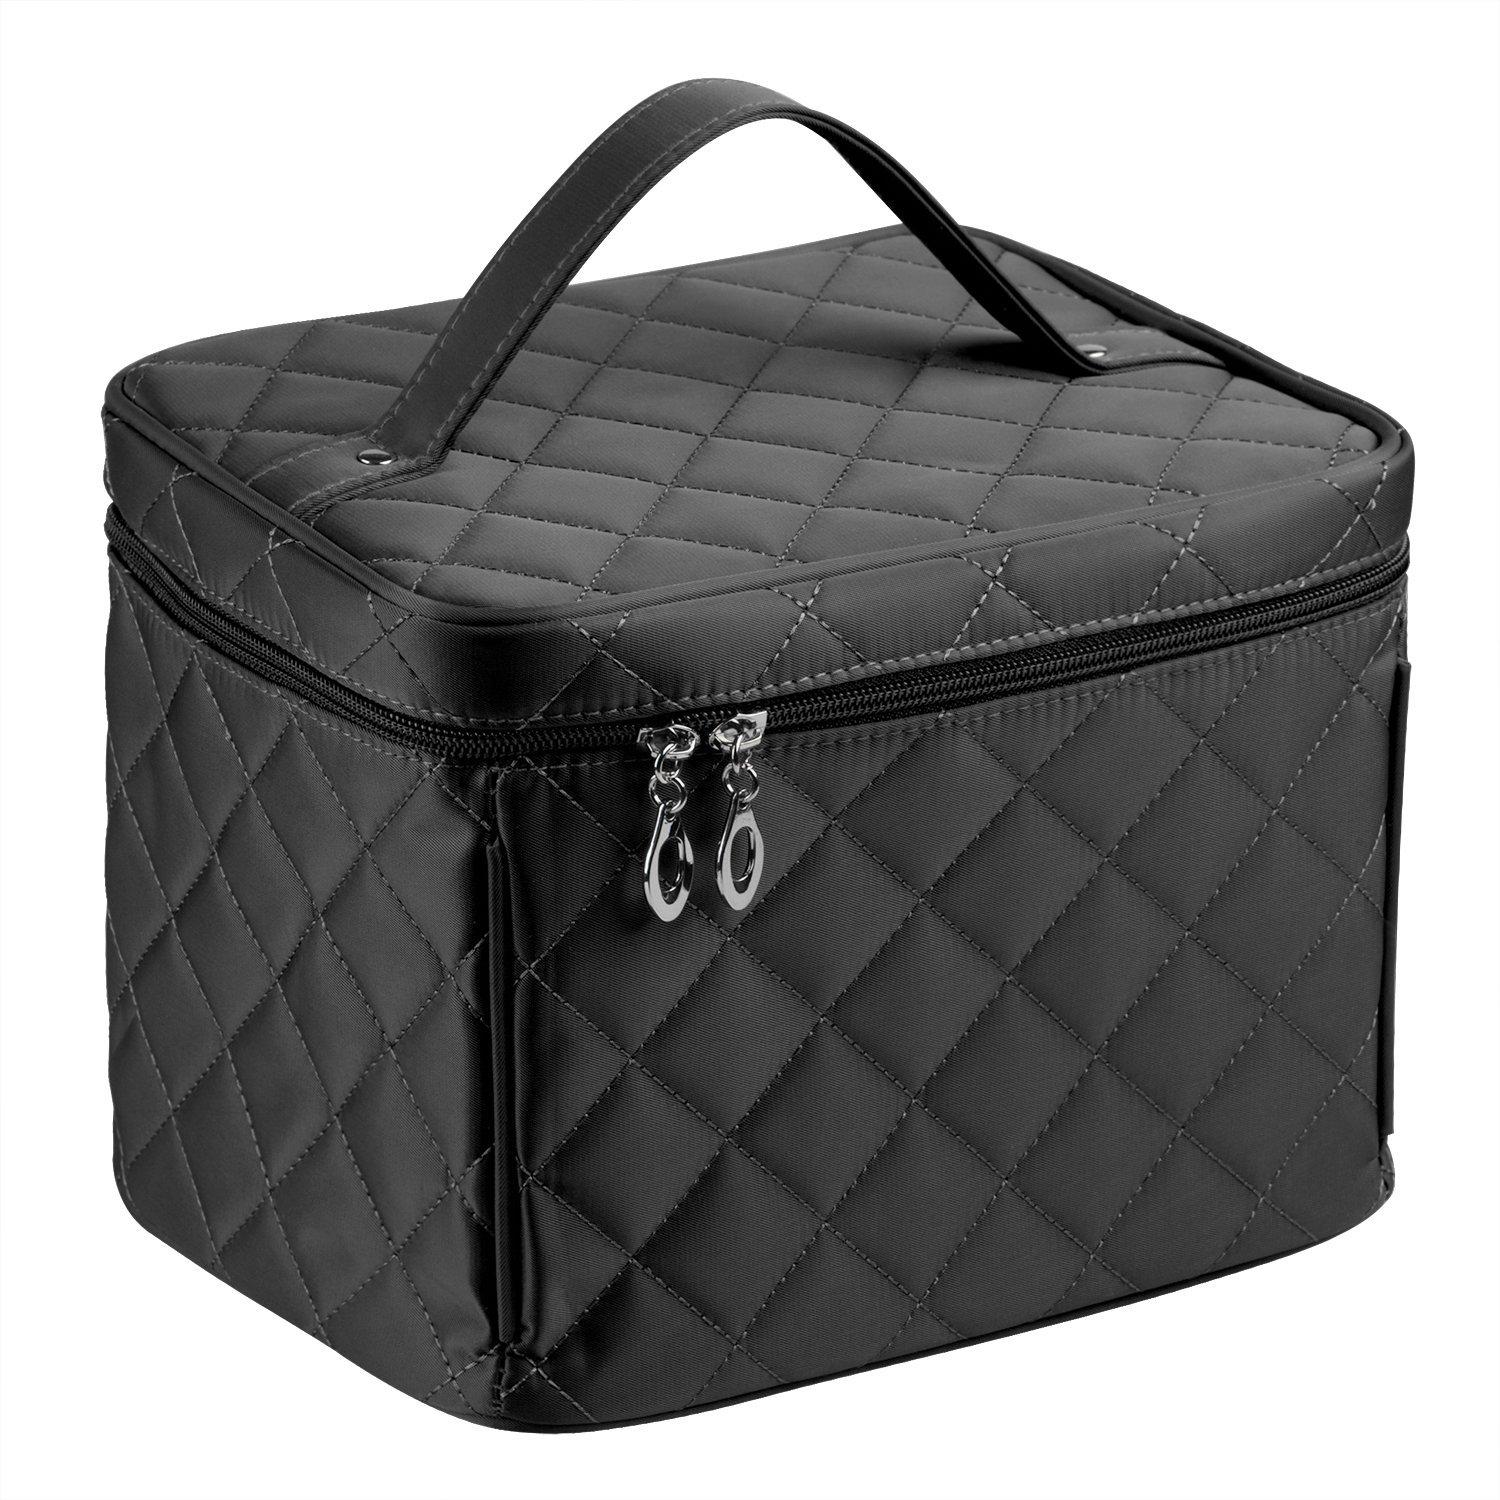 EN'DA Cosmetic bag with quality zipper Big size Nylon Make up Bag single layer travel Makeup bags (Black)